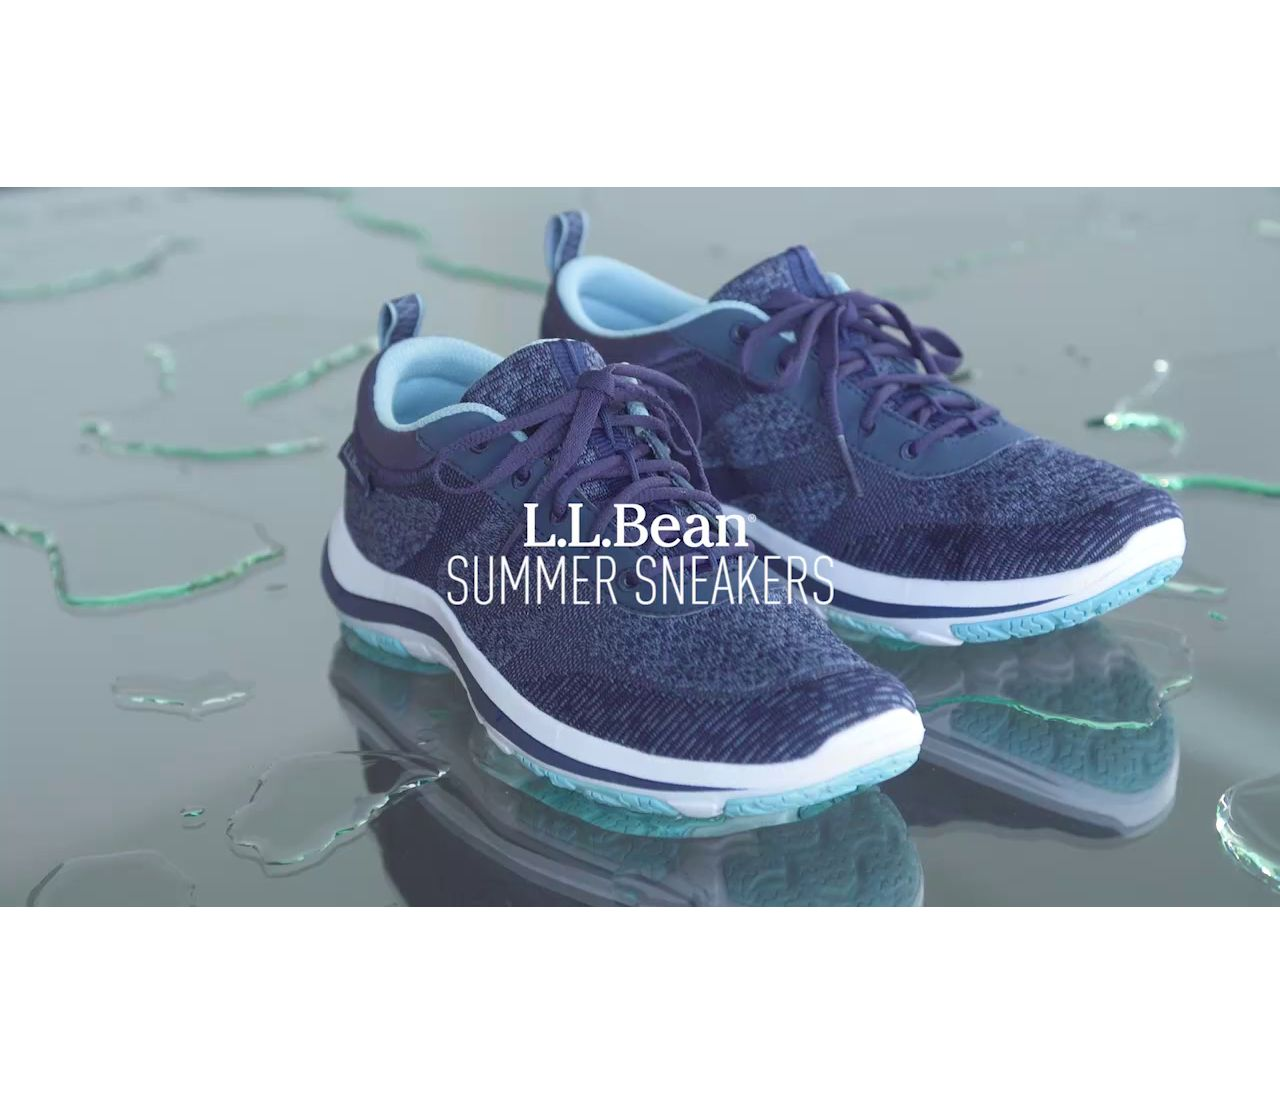 Video: Bean's Summer Sneaker Lace Up W's